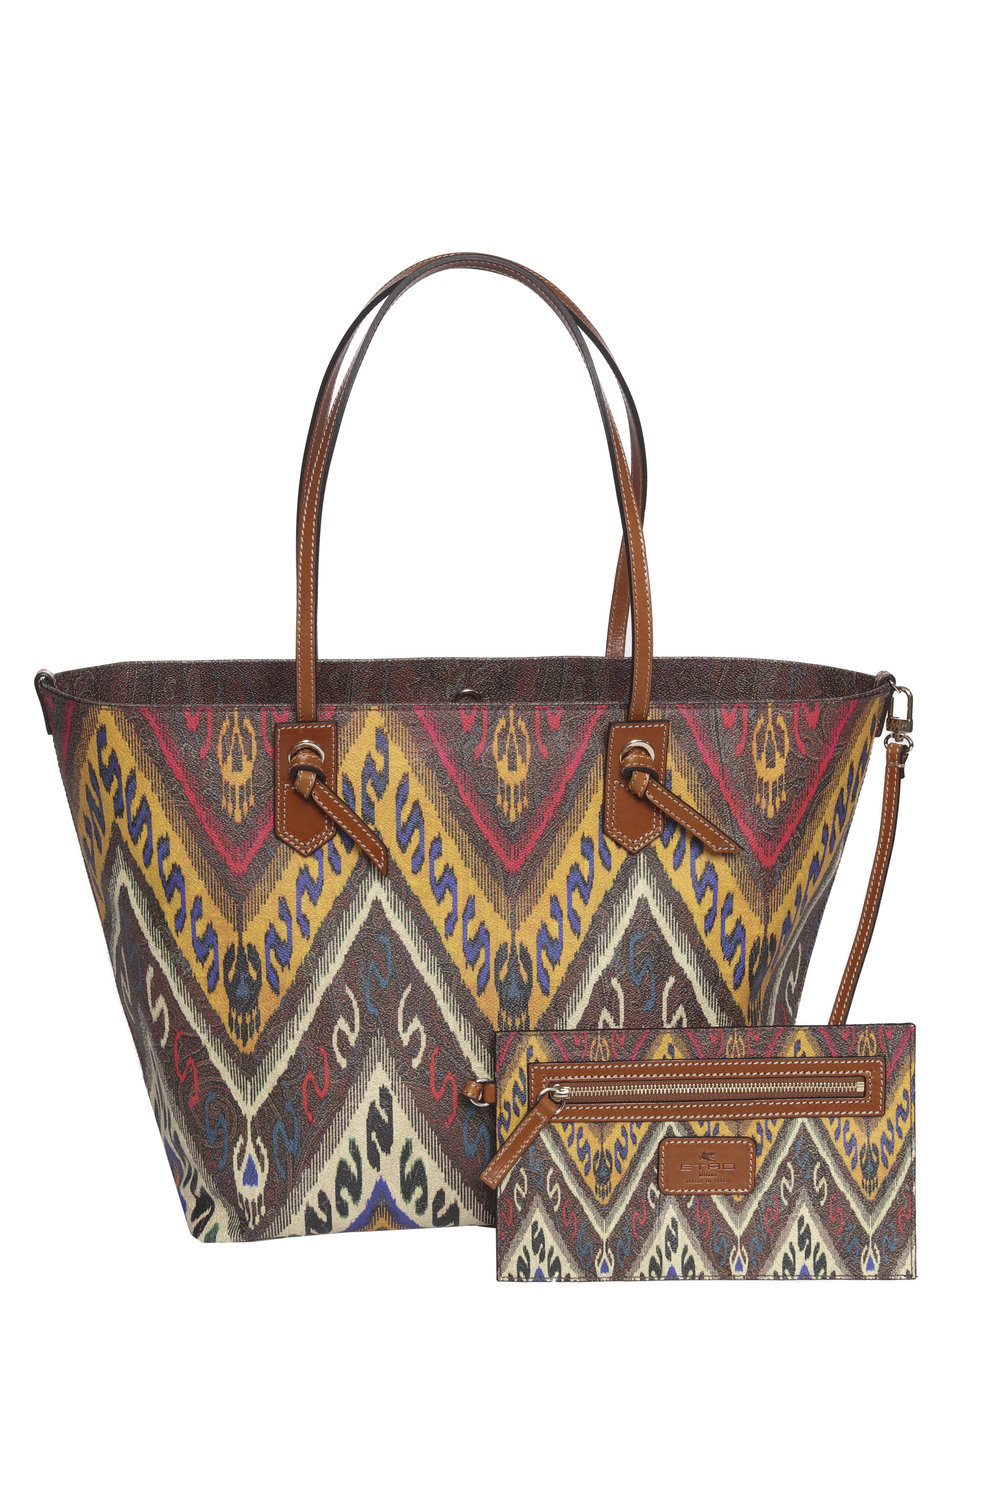 An Etro tote for summer, at Canelle